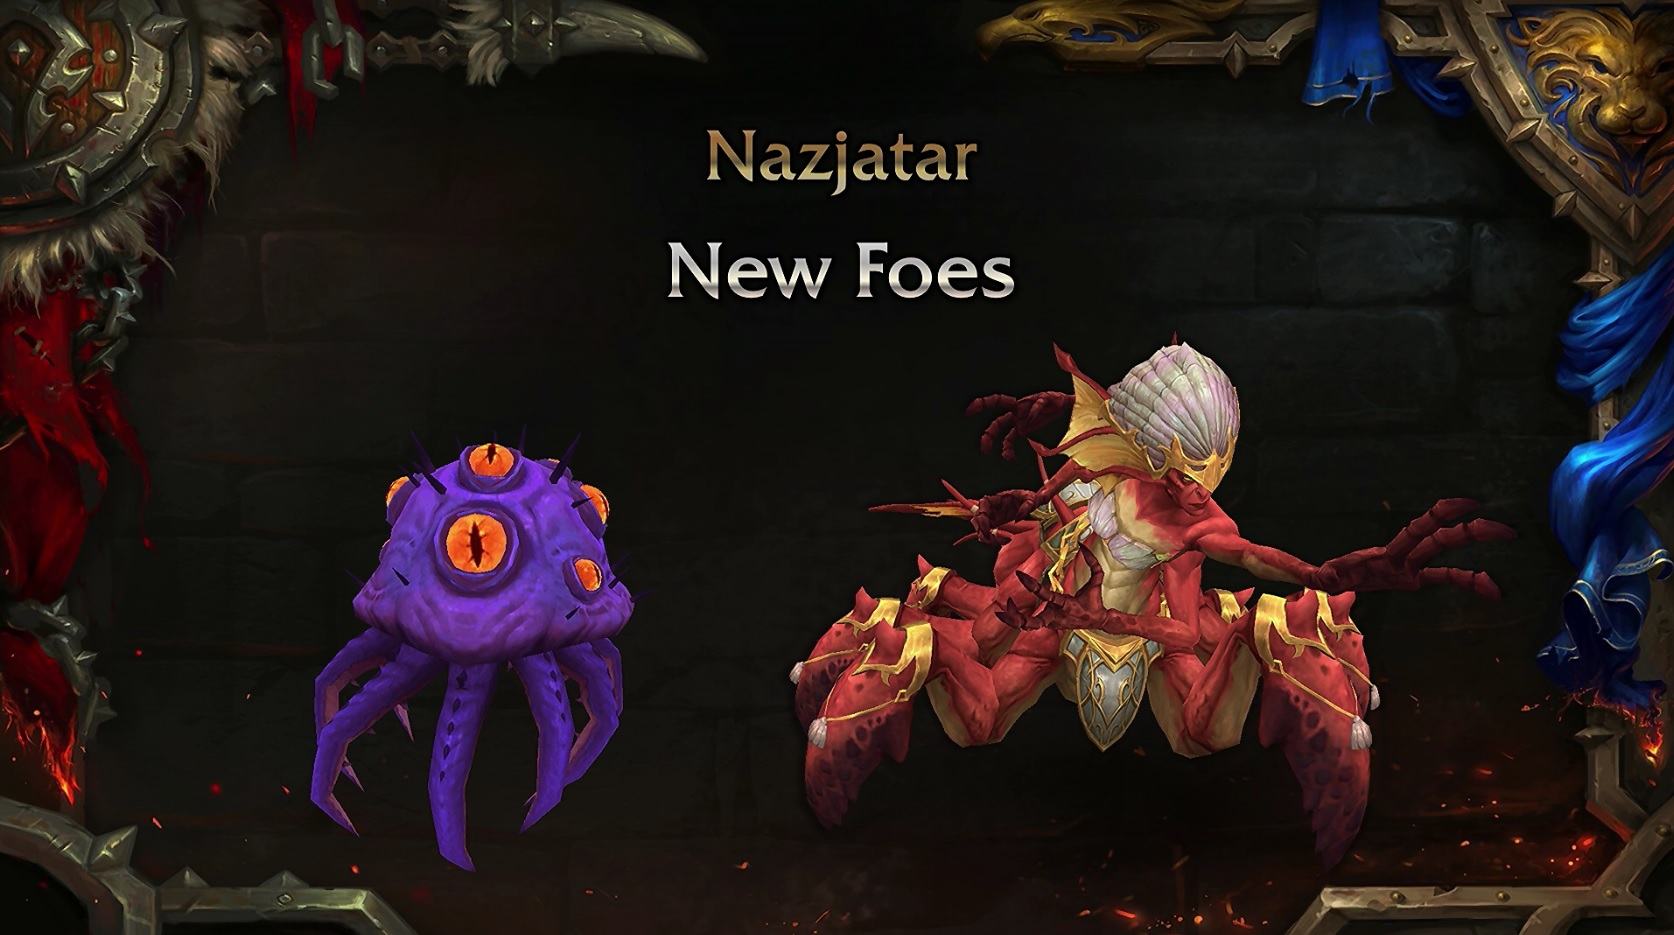 WoW Patch 82 Nazjatar New Foes